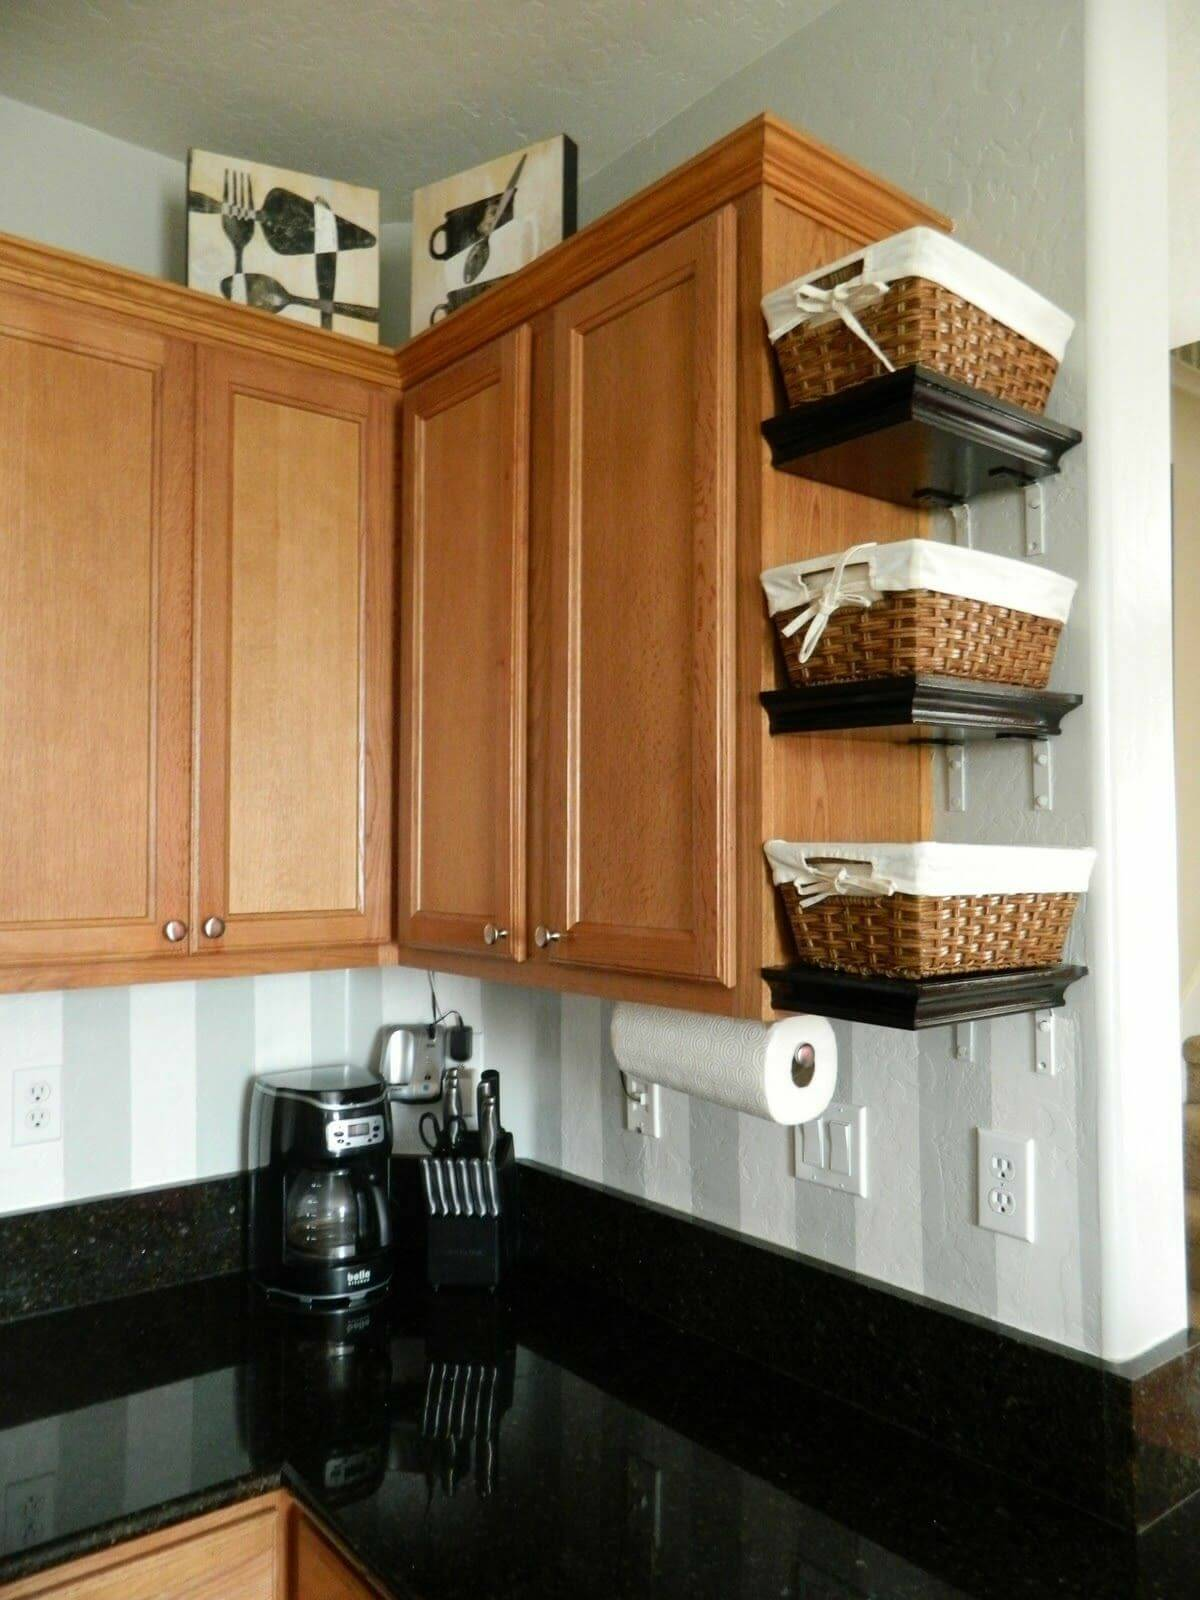 Kitchen Organizer Baskets On Shelves